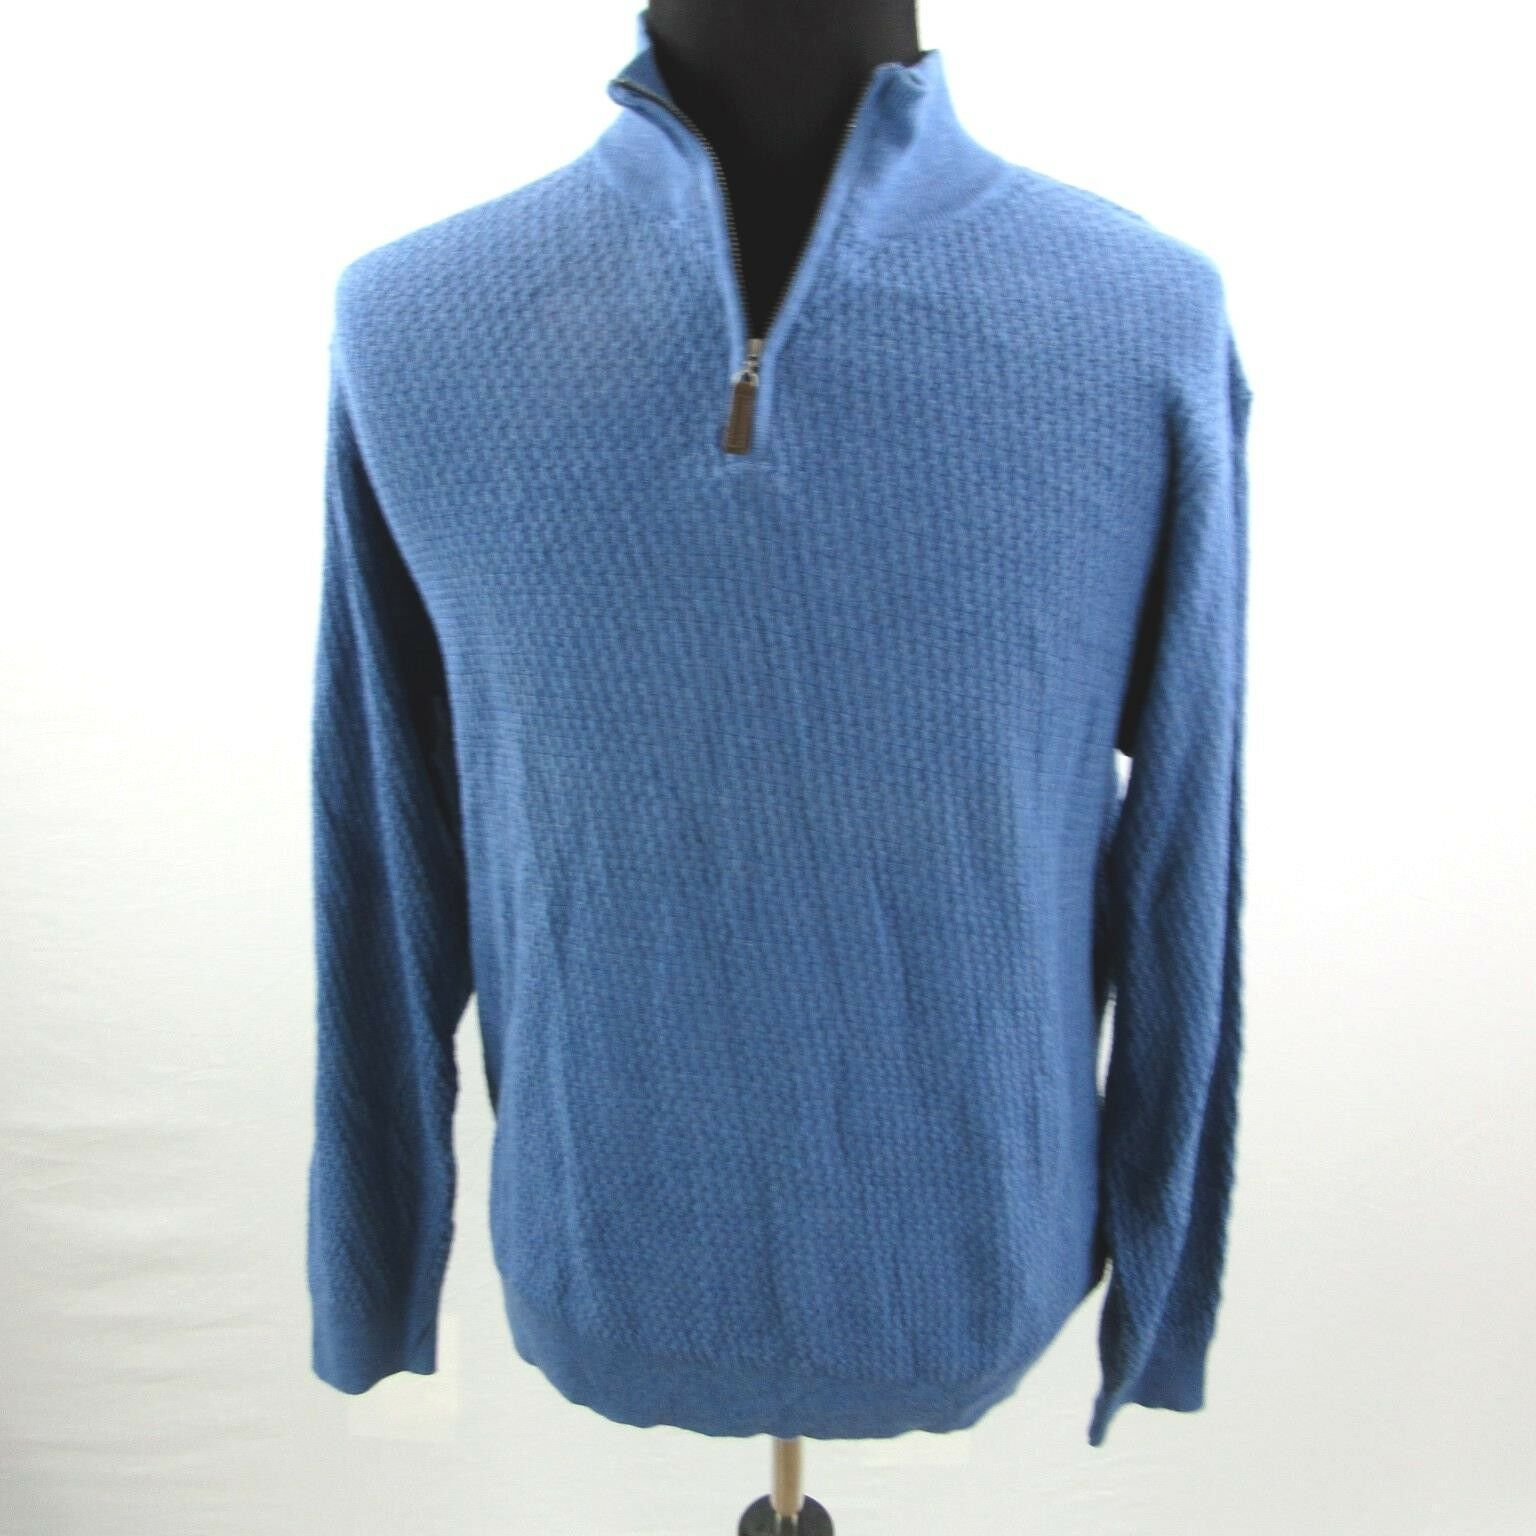 NEW Tasso Elba 1 2 Zip Sweater Mens XL bluee Cotton NWT